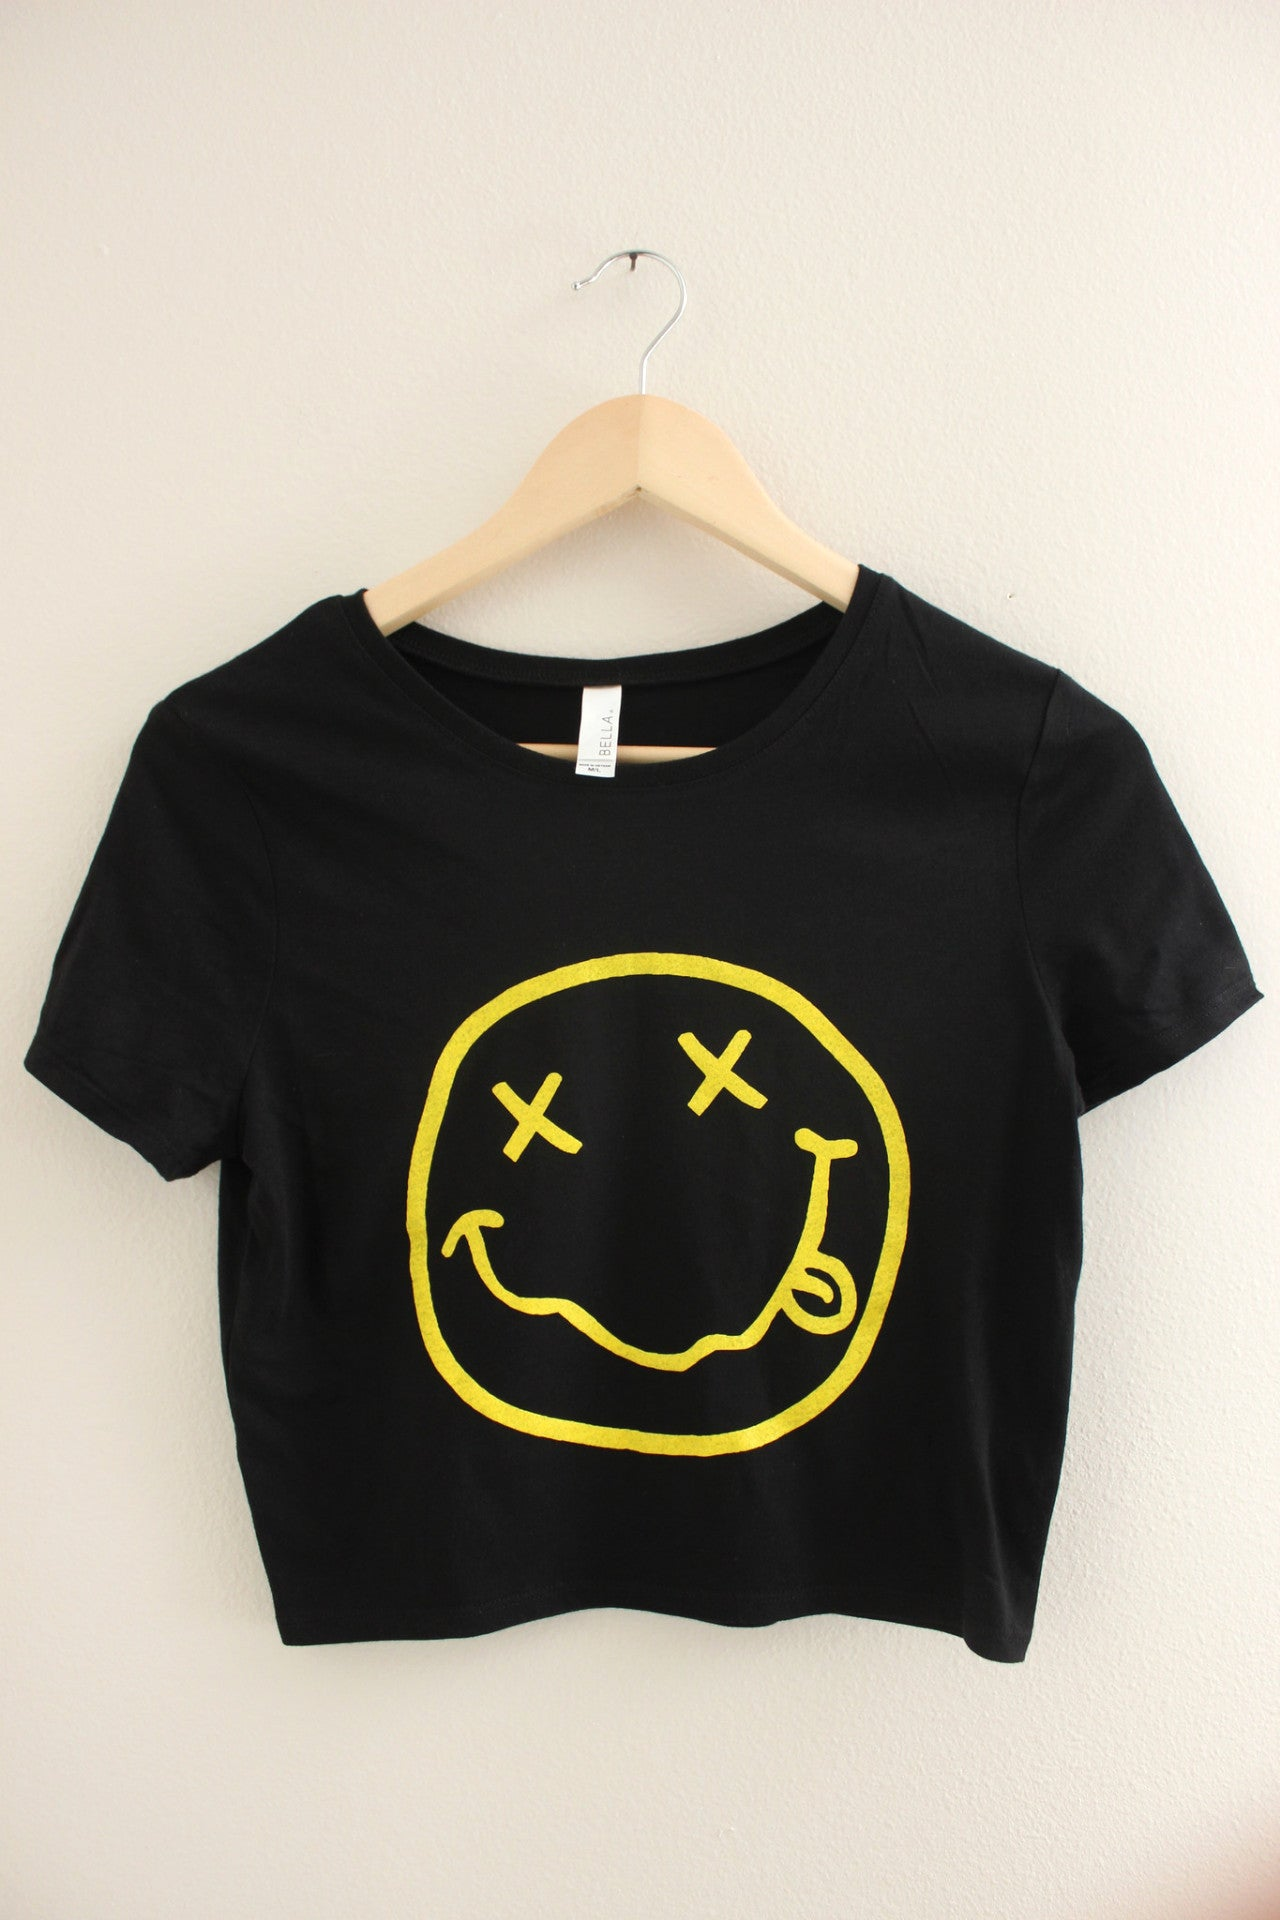 Nirvana Smiley Face Black Graphic Crop Top